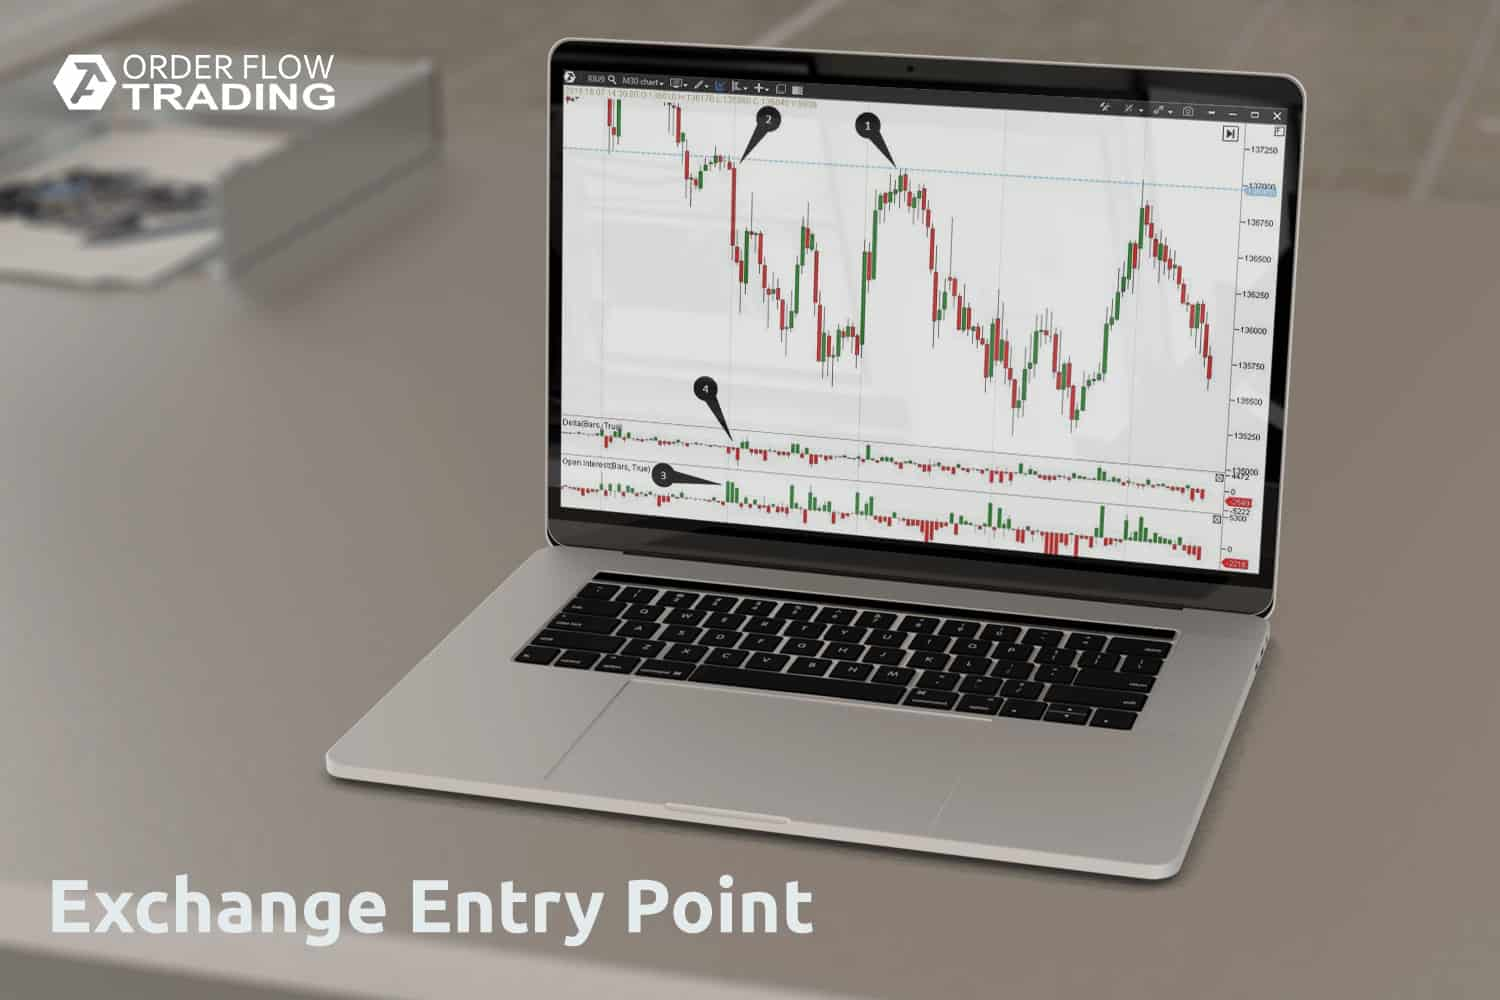 How to identify an entry point on an exchange?